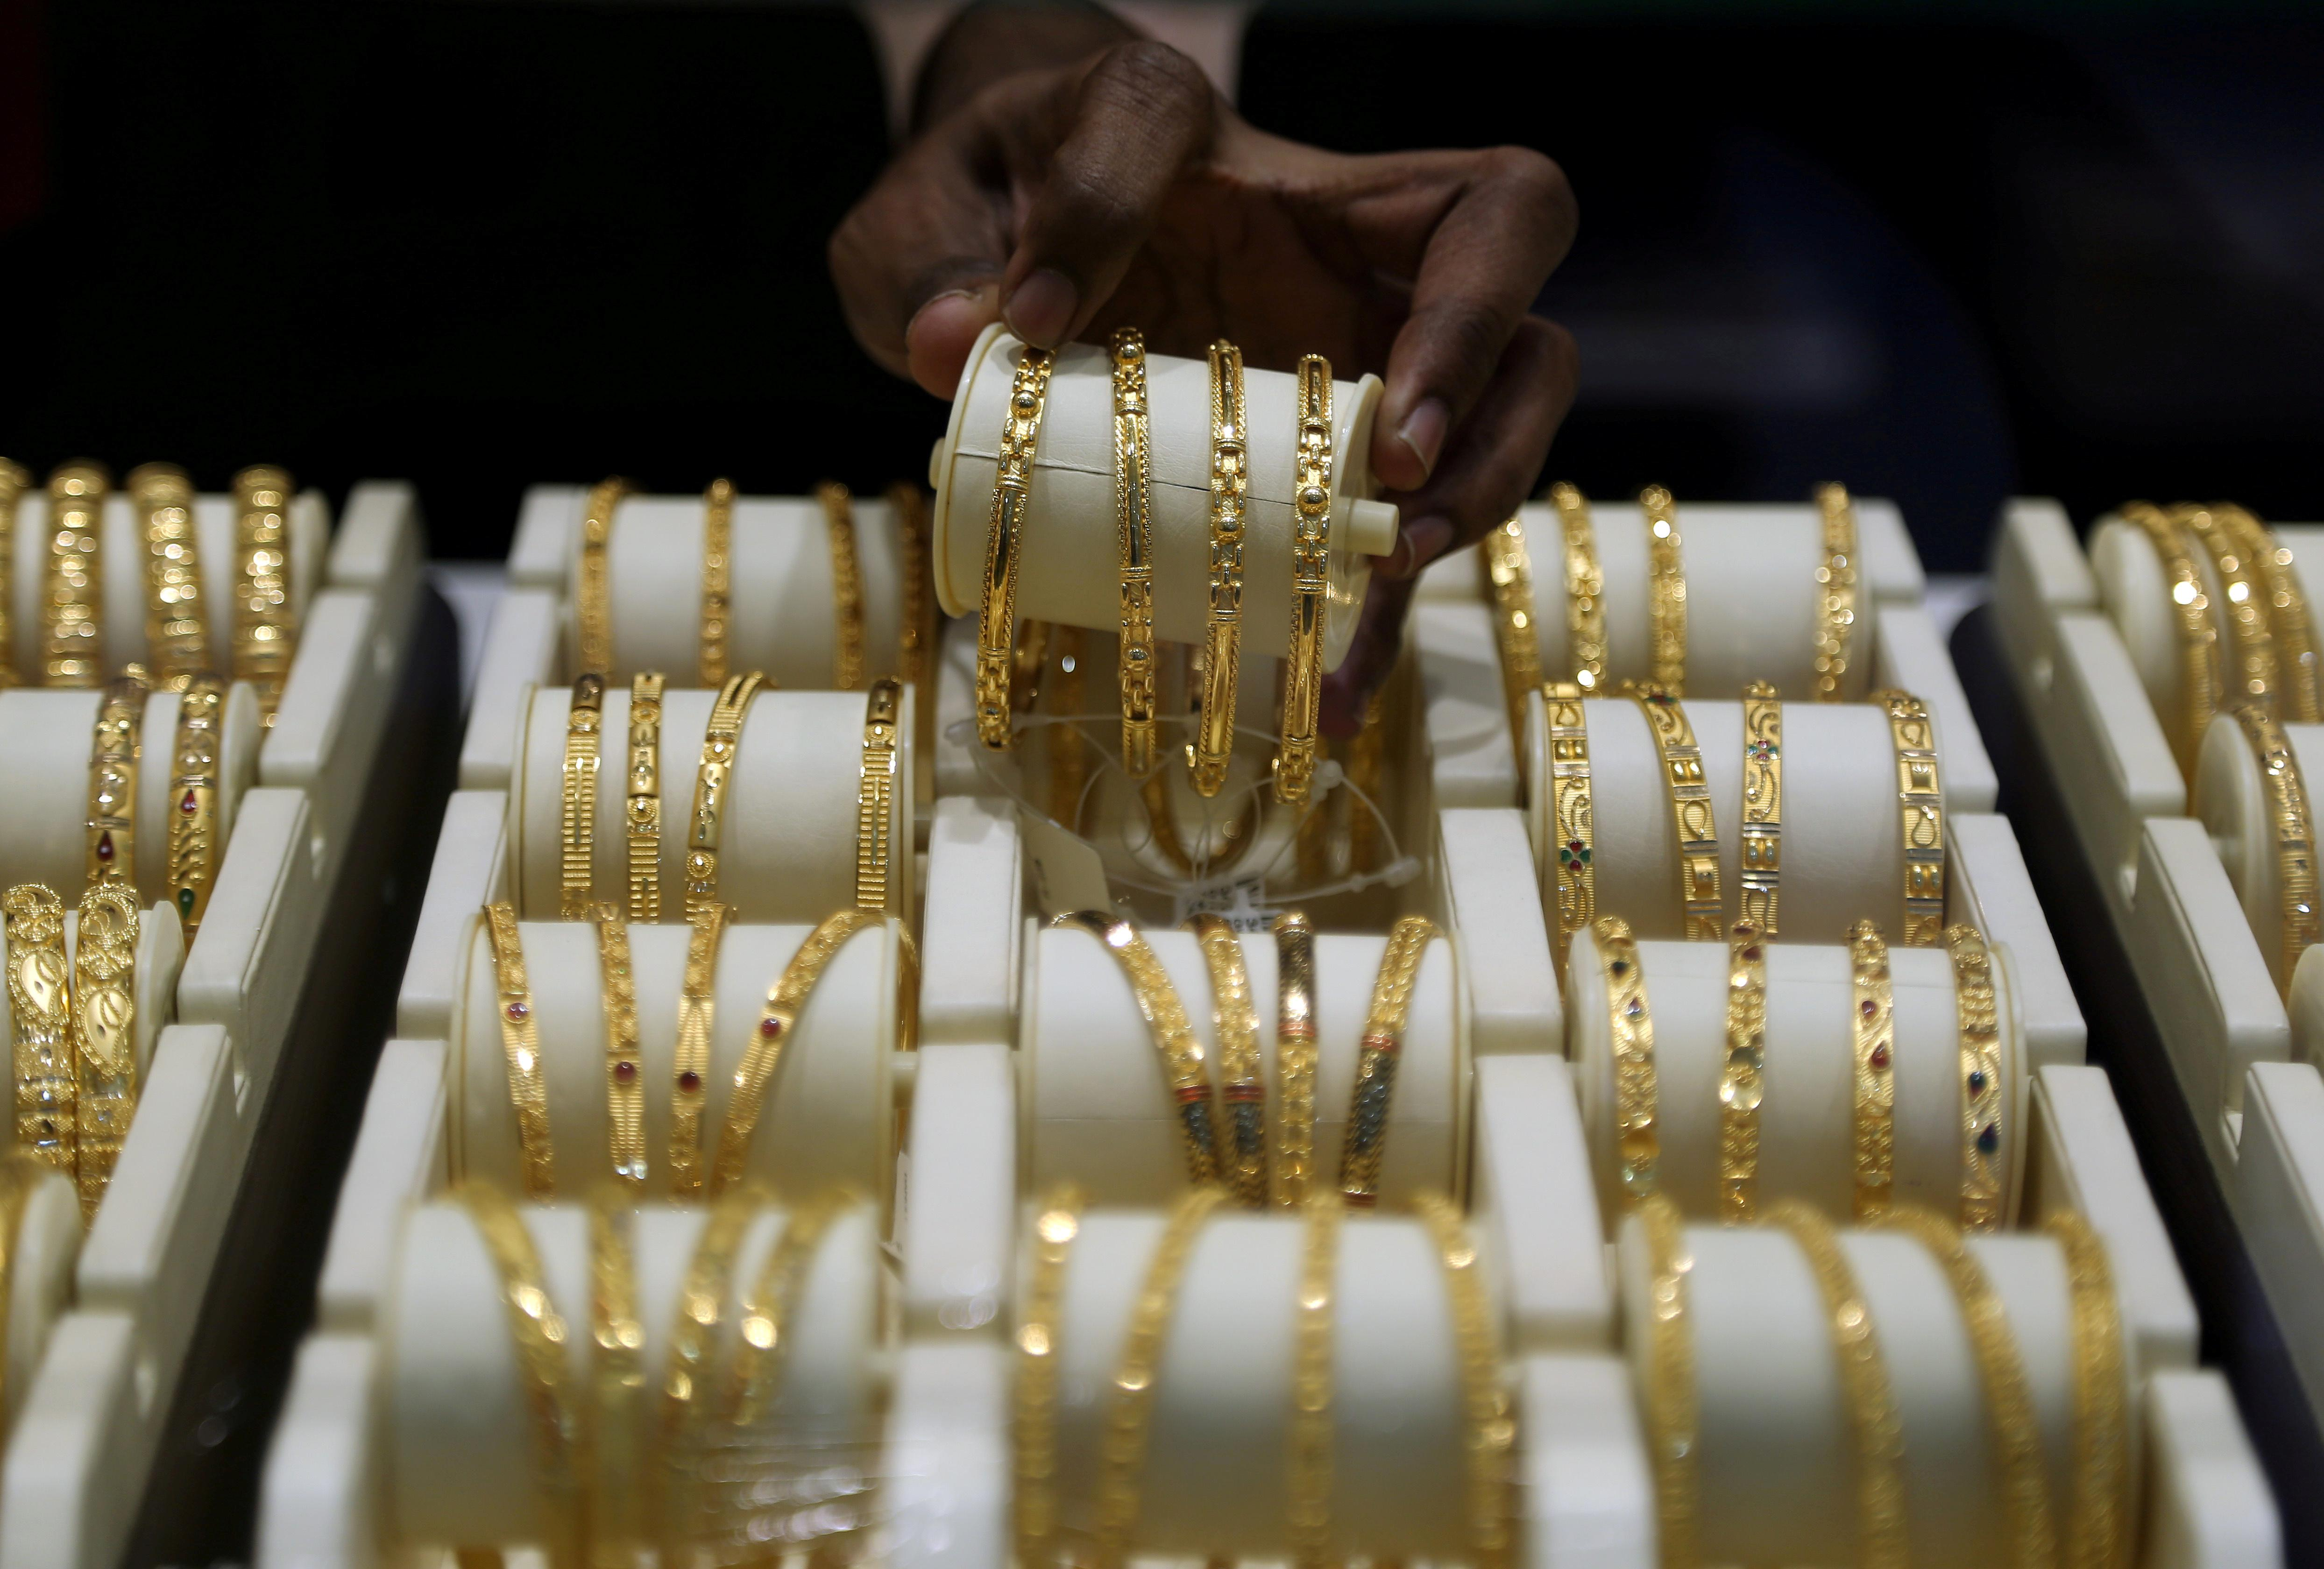 Asia Gold: Demand tepid in top markets, India muted ahead of festivals